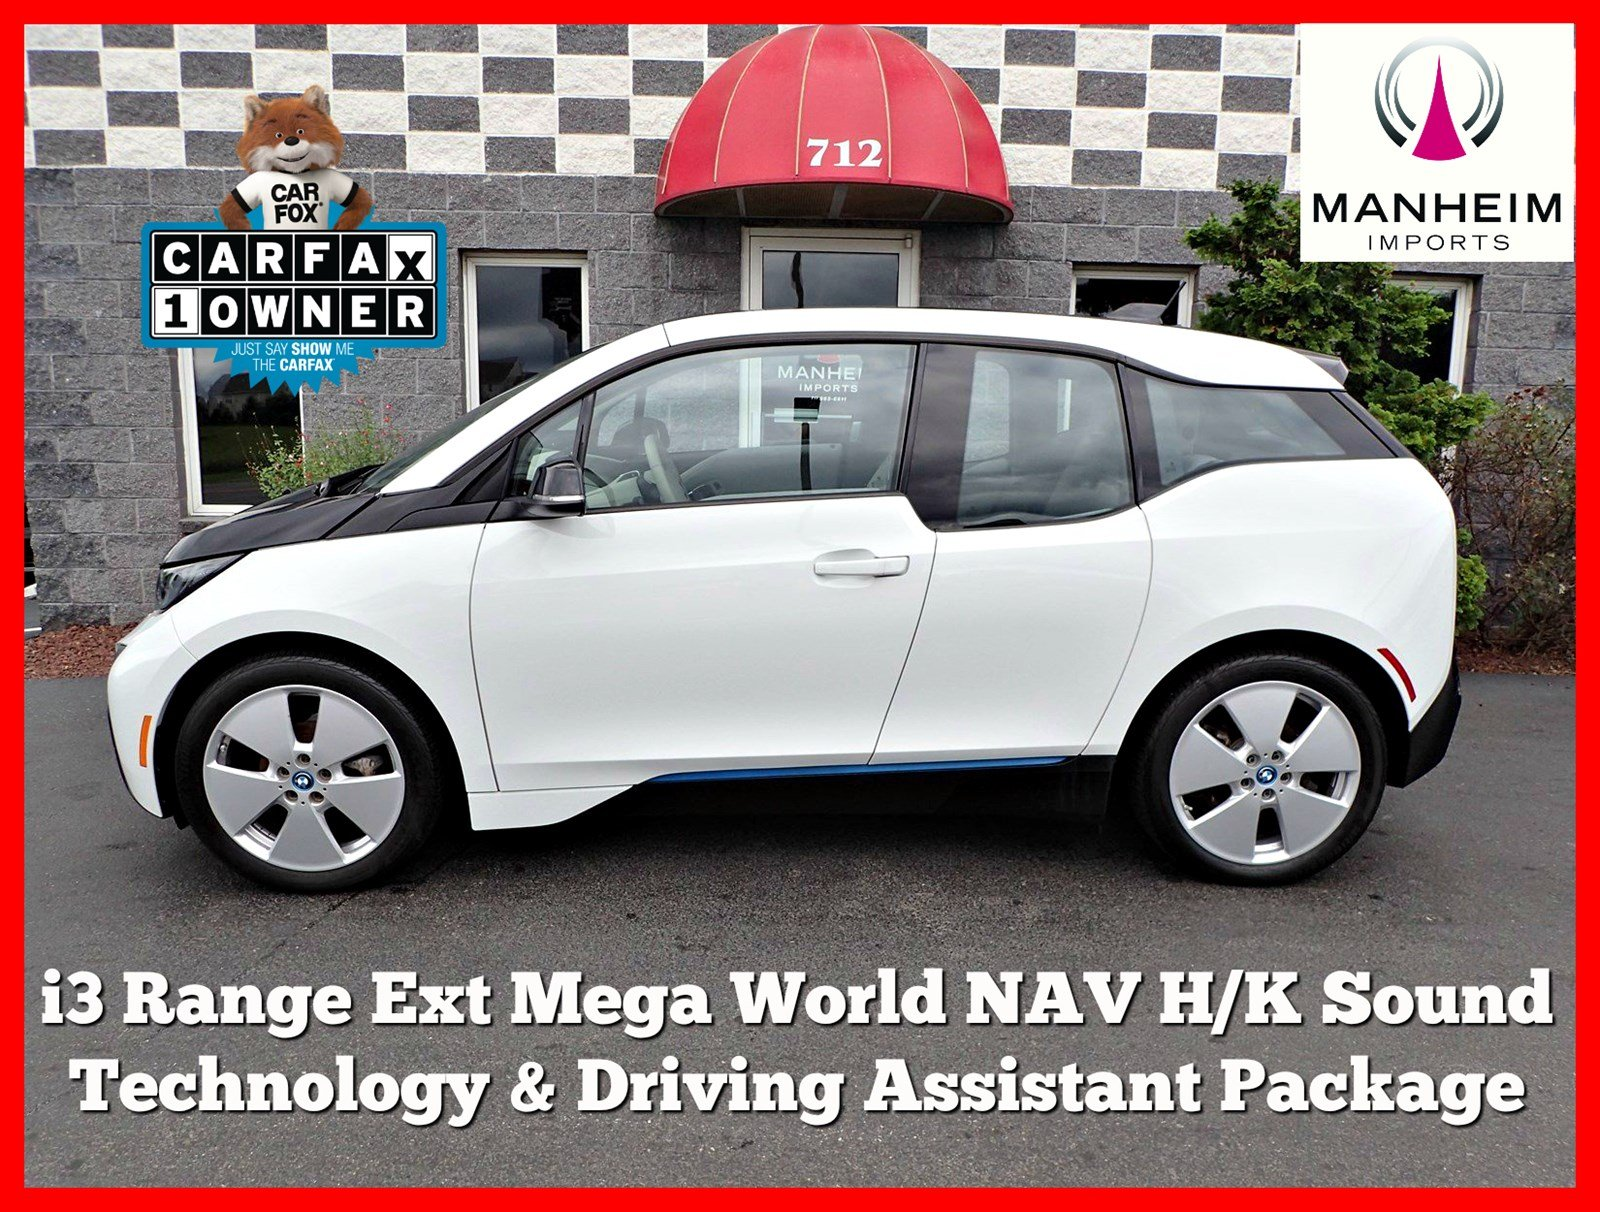 Pre-Owned 2016 BMW i3 REX Mega World Tech